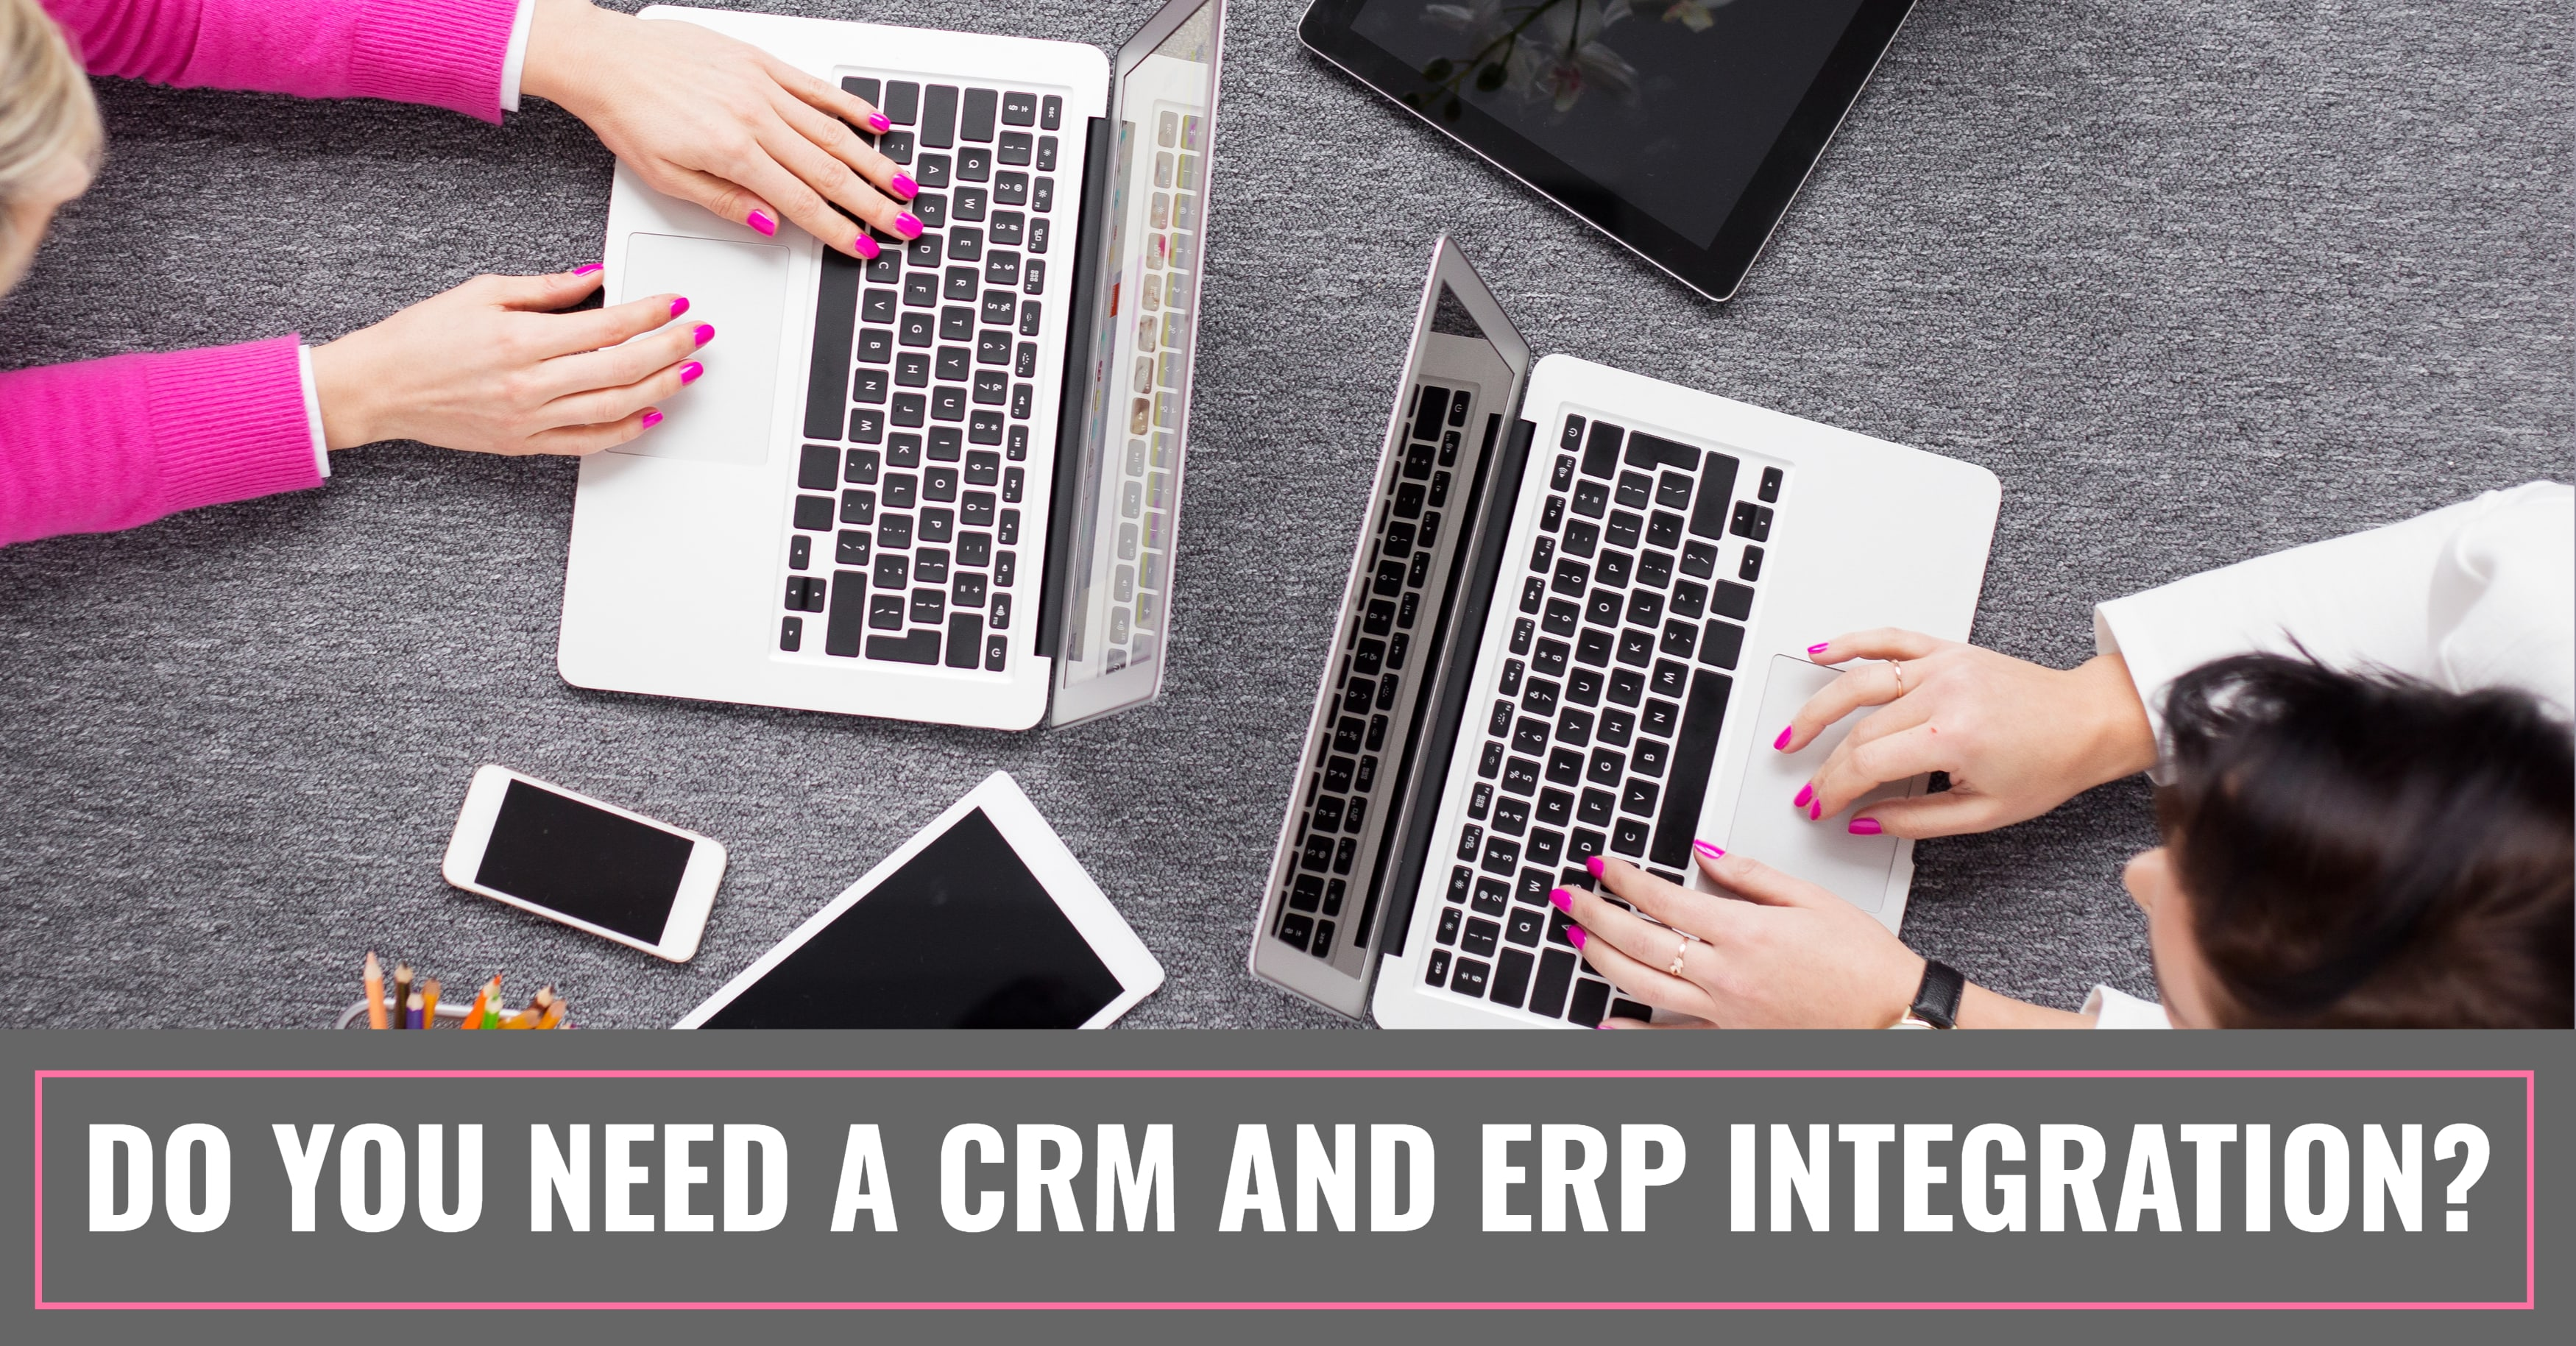 Do You Need a CRM and ERP Integration?